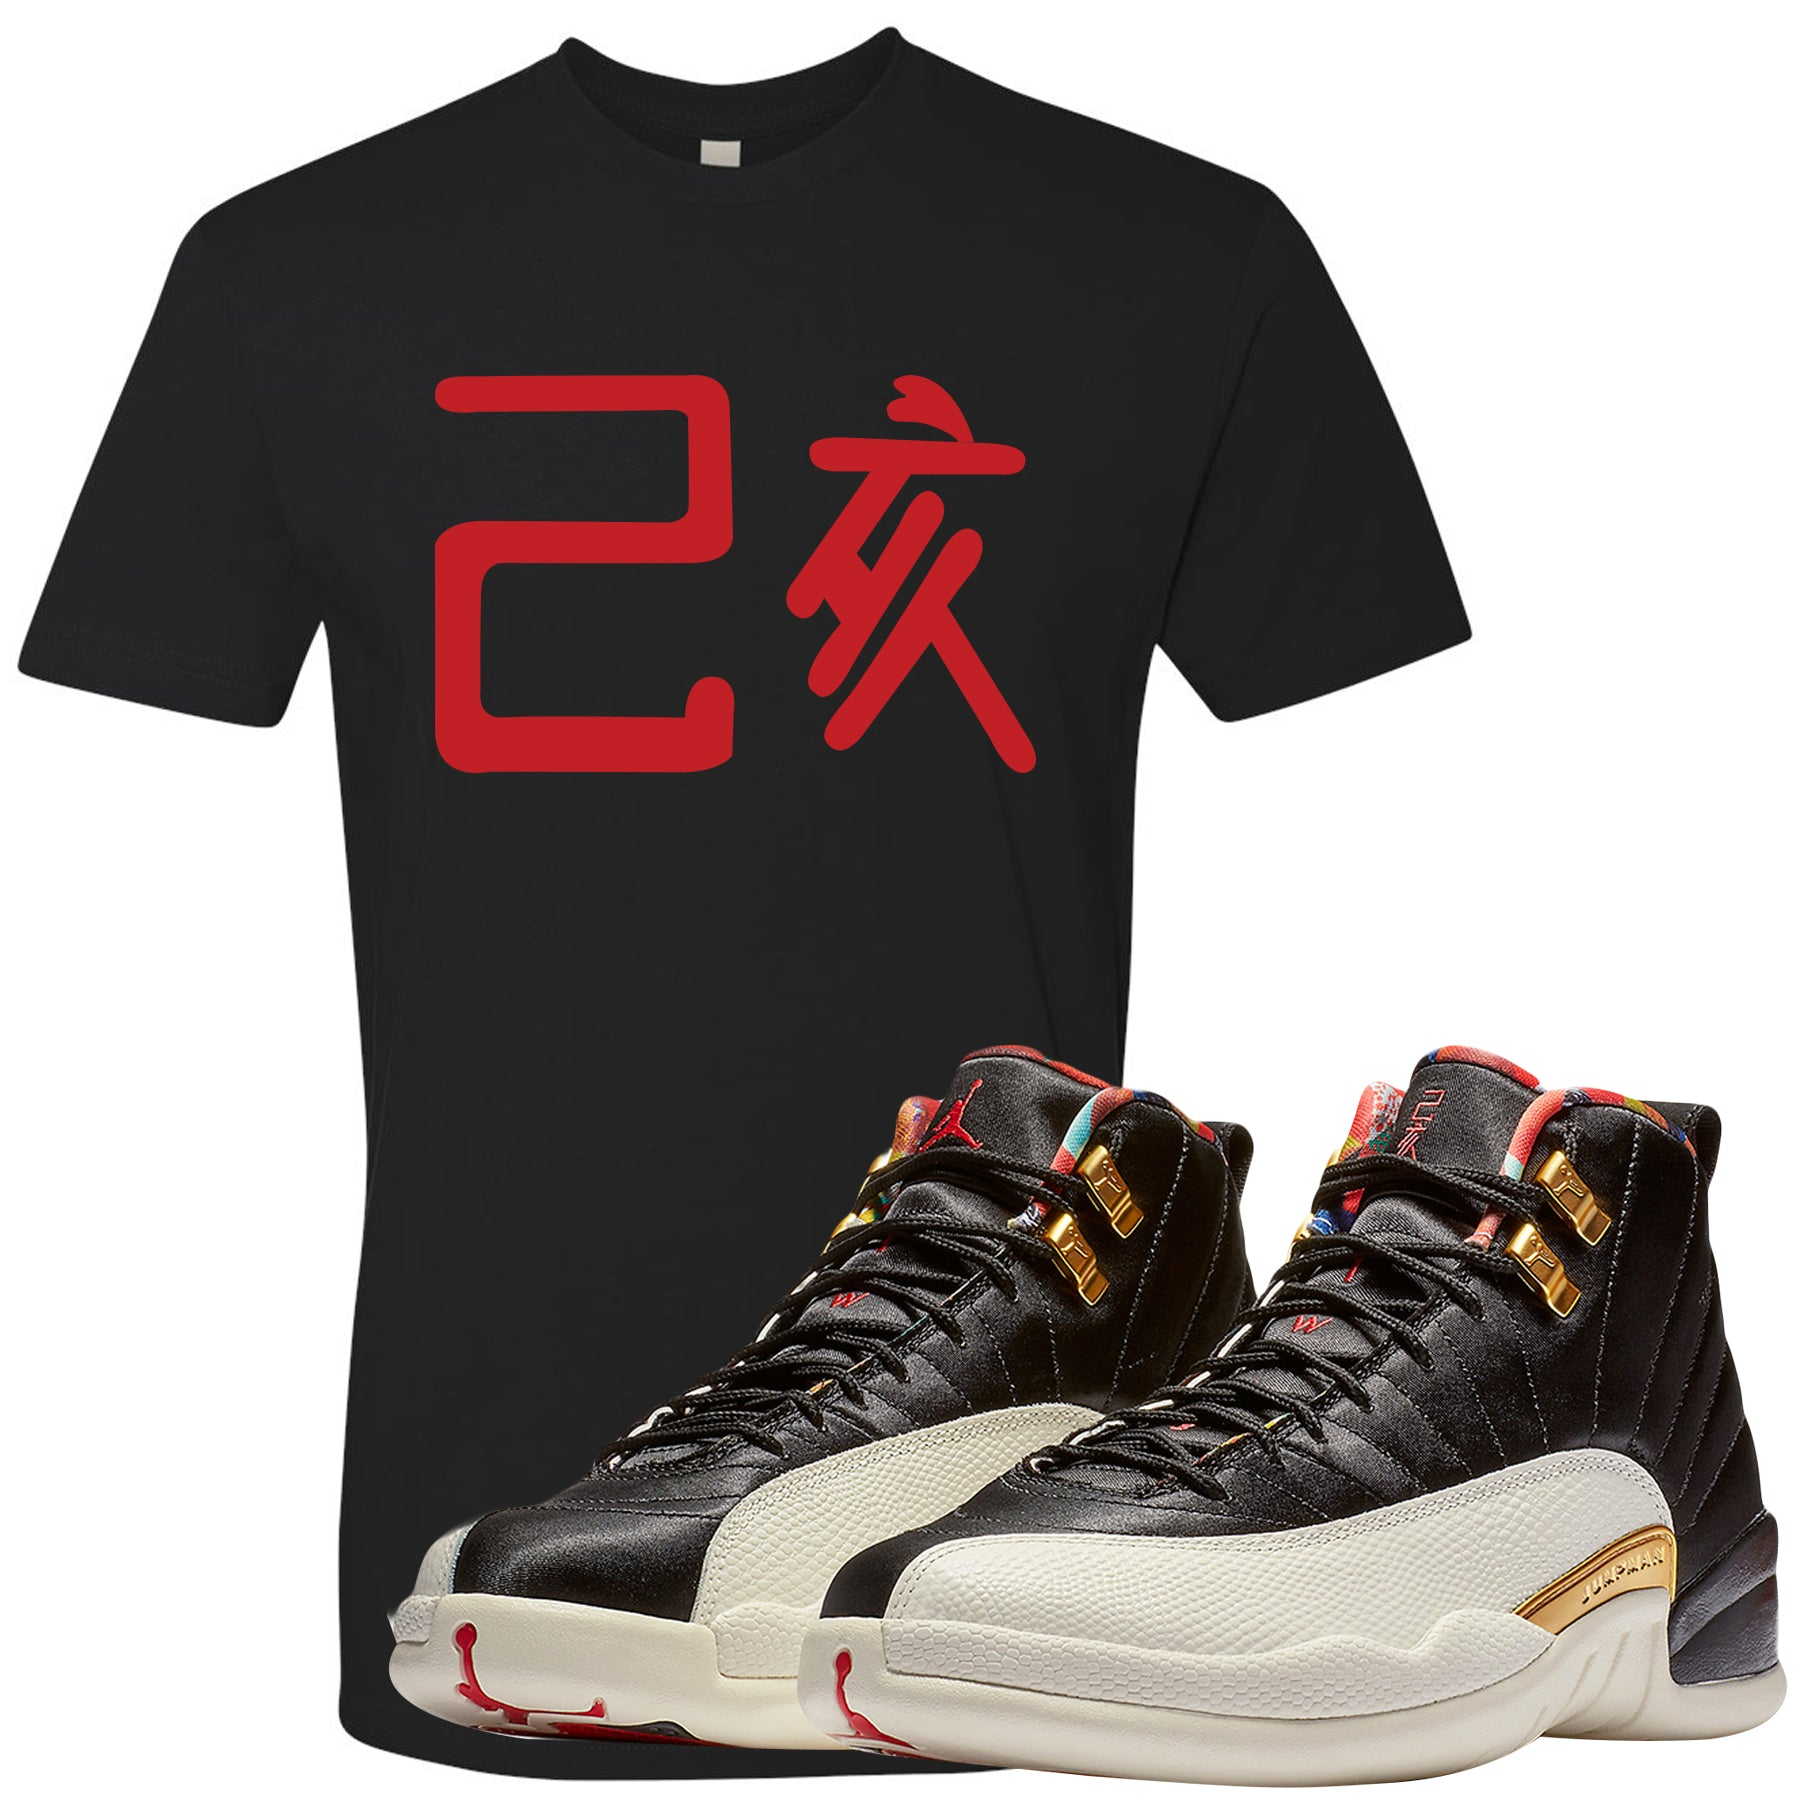 626e6462bd2c Match your pair of Chinese New Year Jordan 12s with this Jordan 12 Chinese  New Year